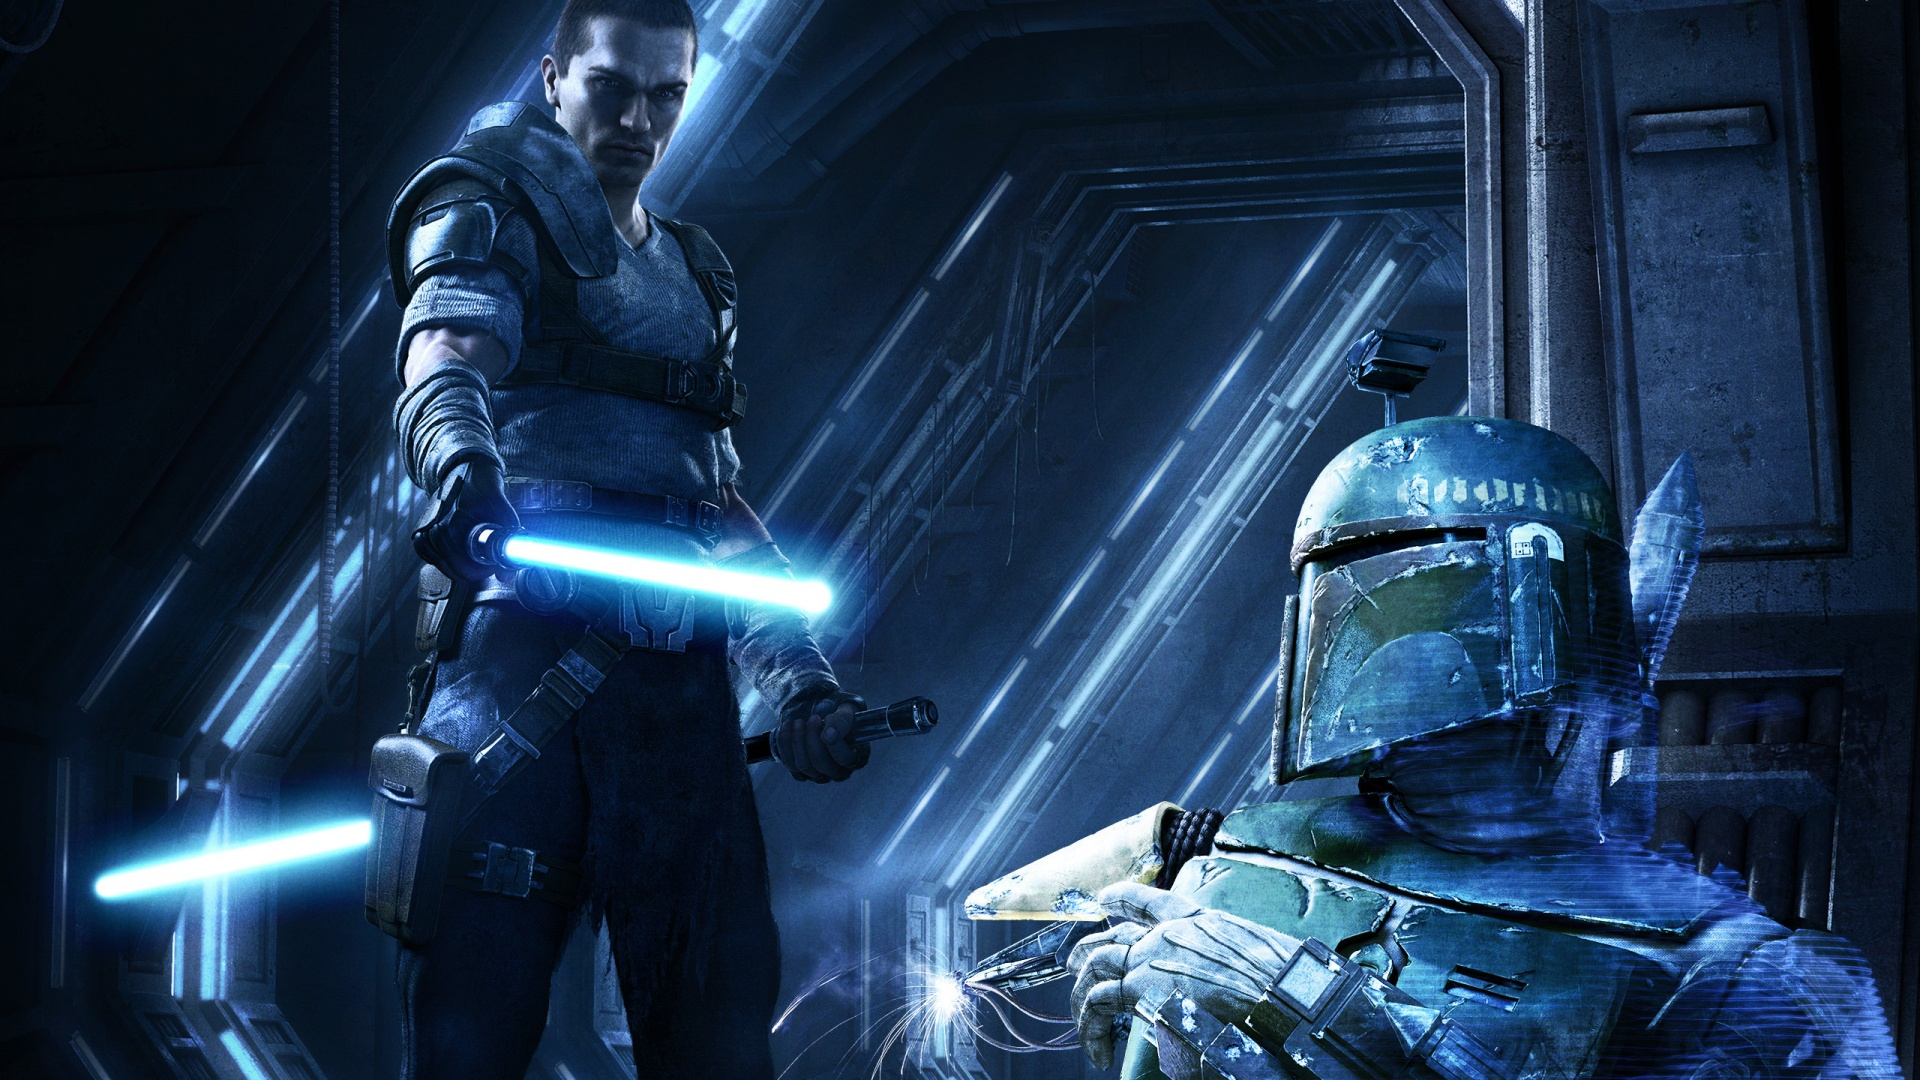 1920x1080 star wars force unleashed 2 how to set wallpaper on your desktop click the download link from above and set the wallpaper on the desktop from